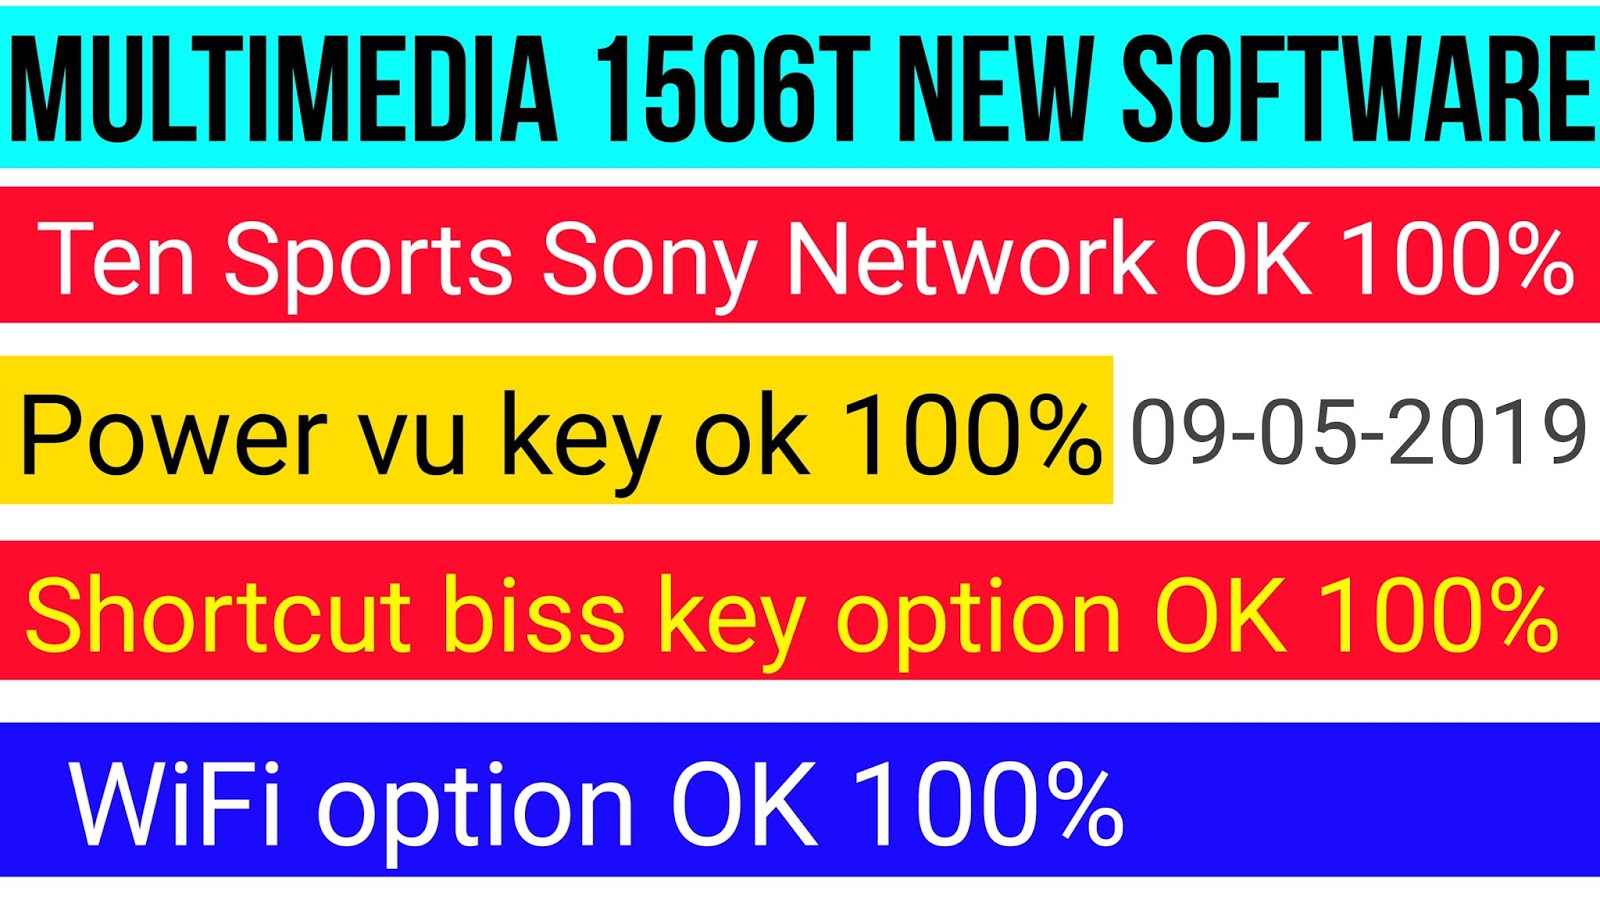 Multimedia 1506T New Power vu key Ten Sports OK With shortcut biss key Option